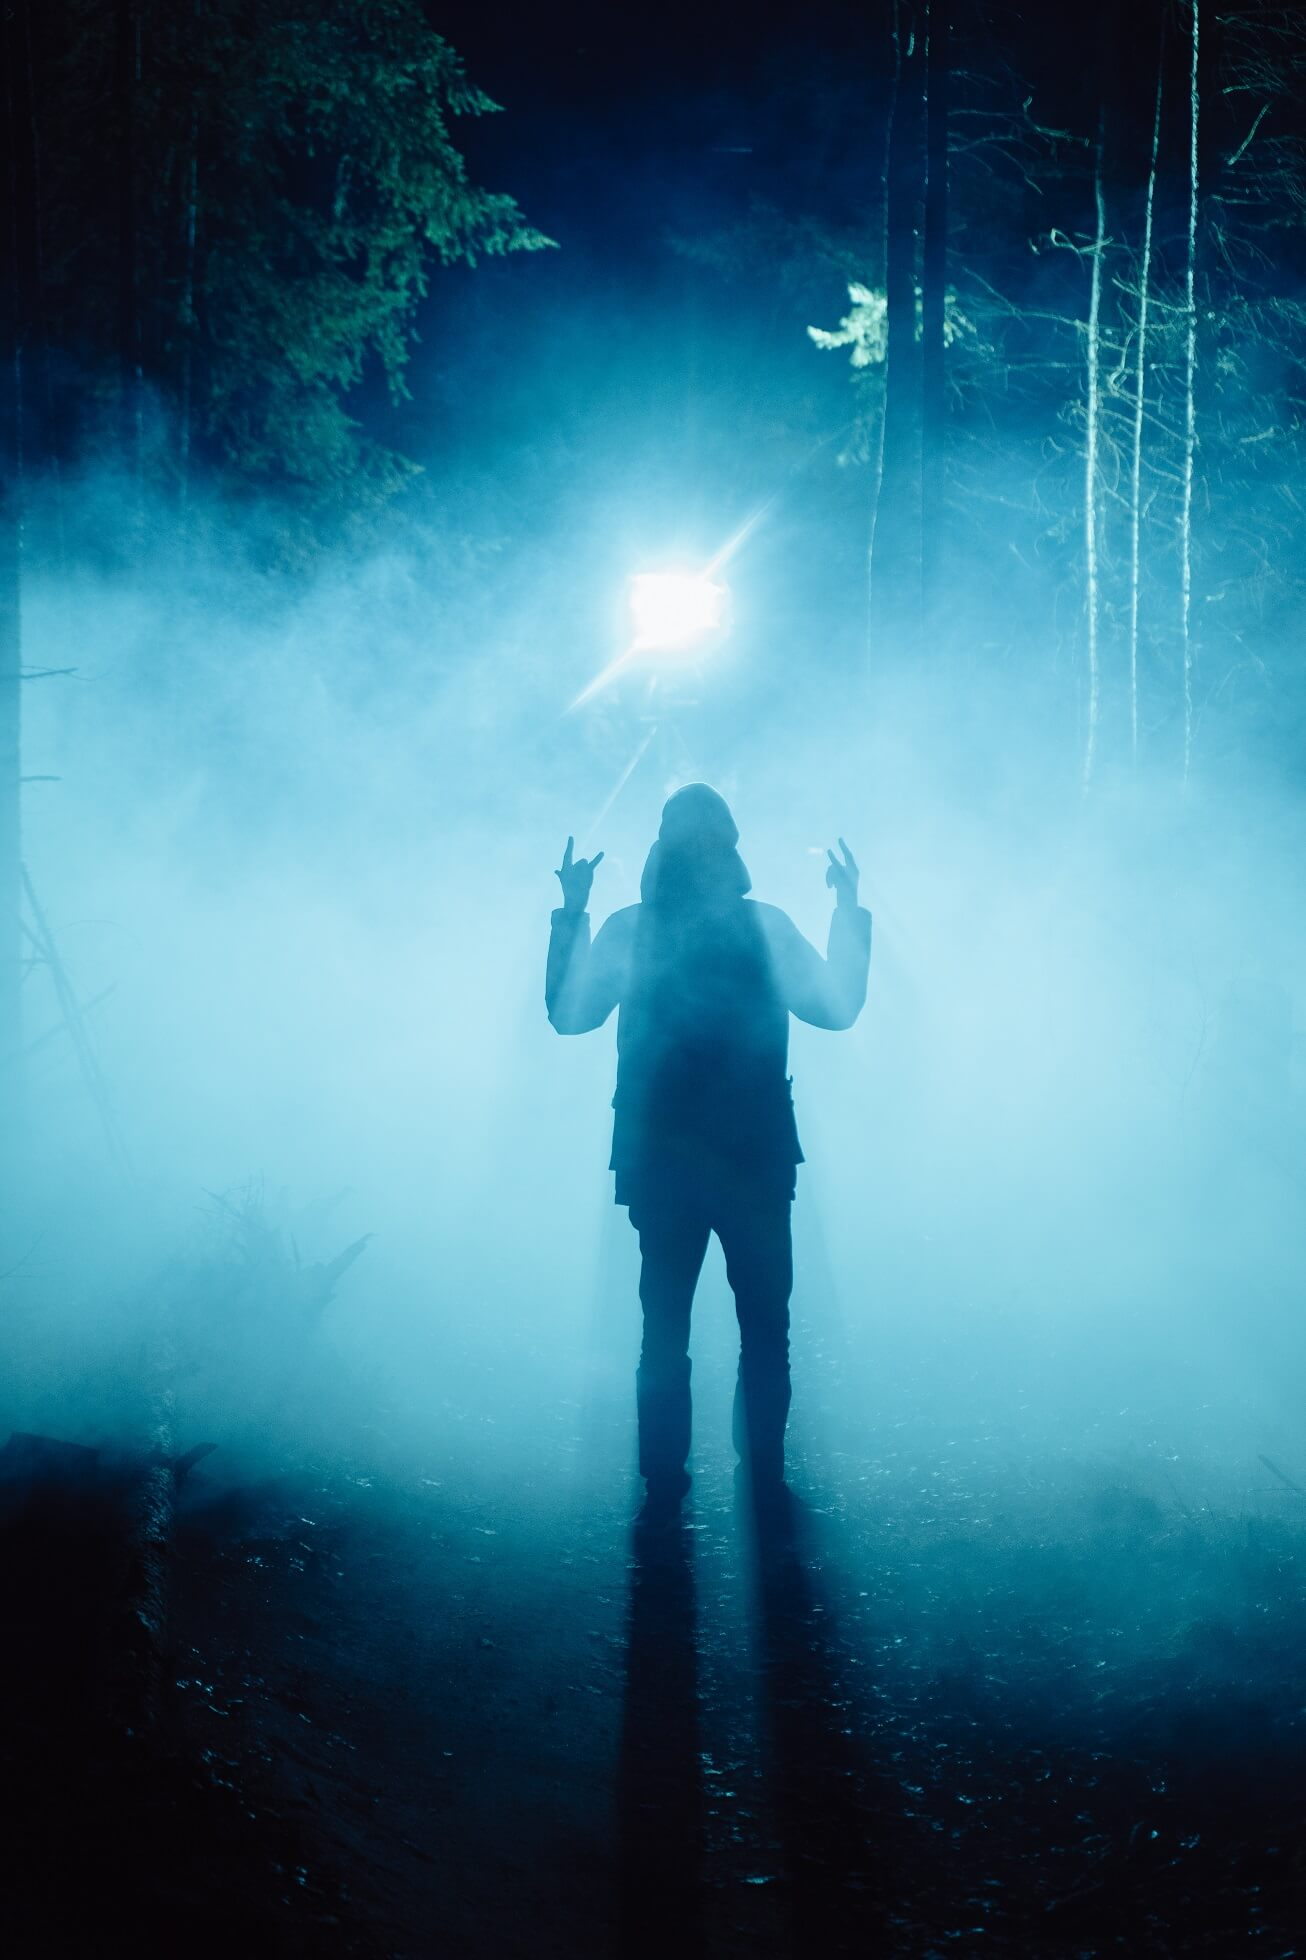 Silhouette of a man showing the Rock On gesture in a dark forest with blue lights in the background